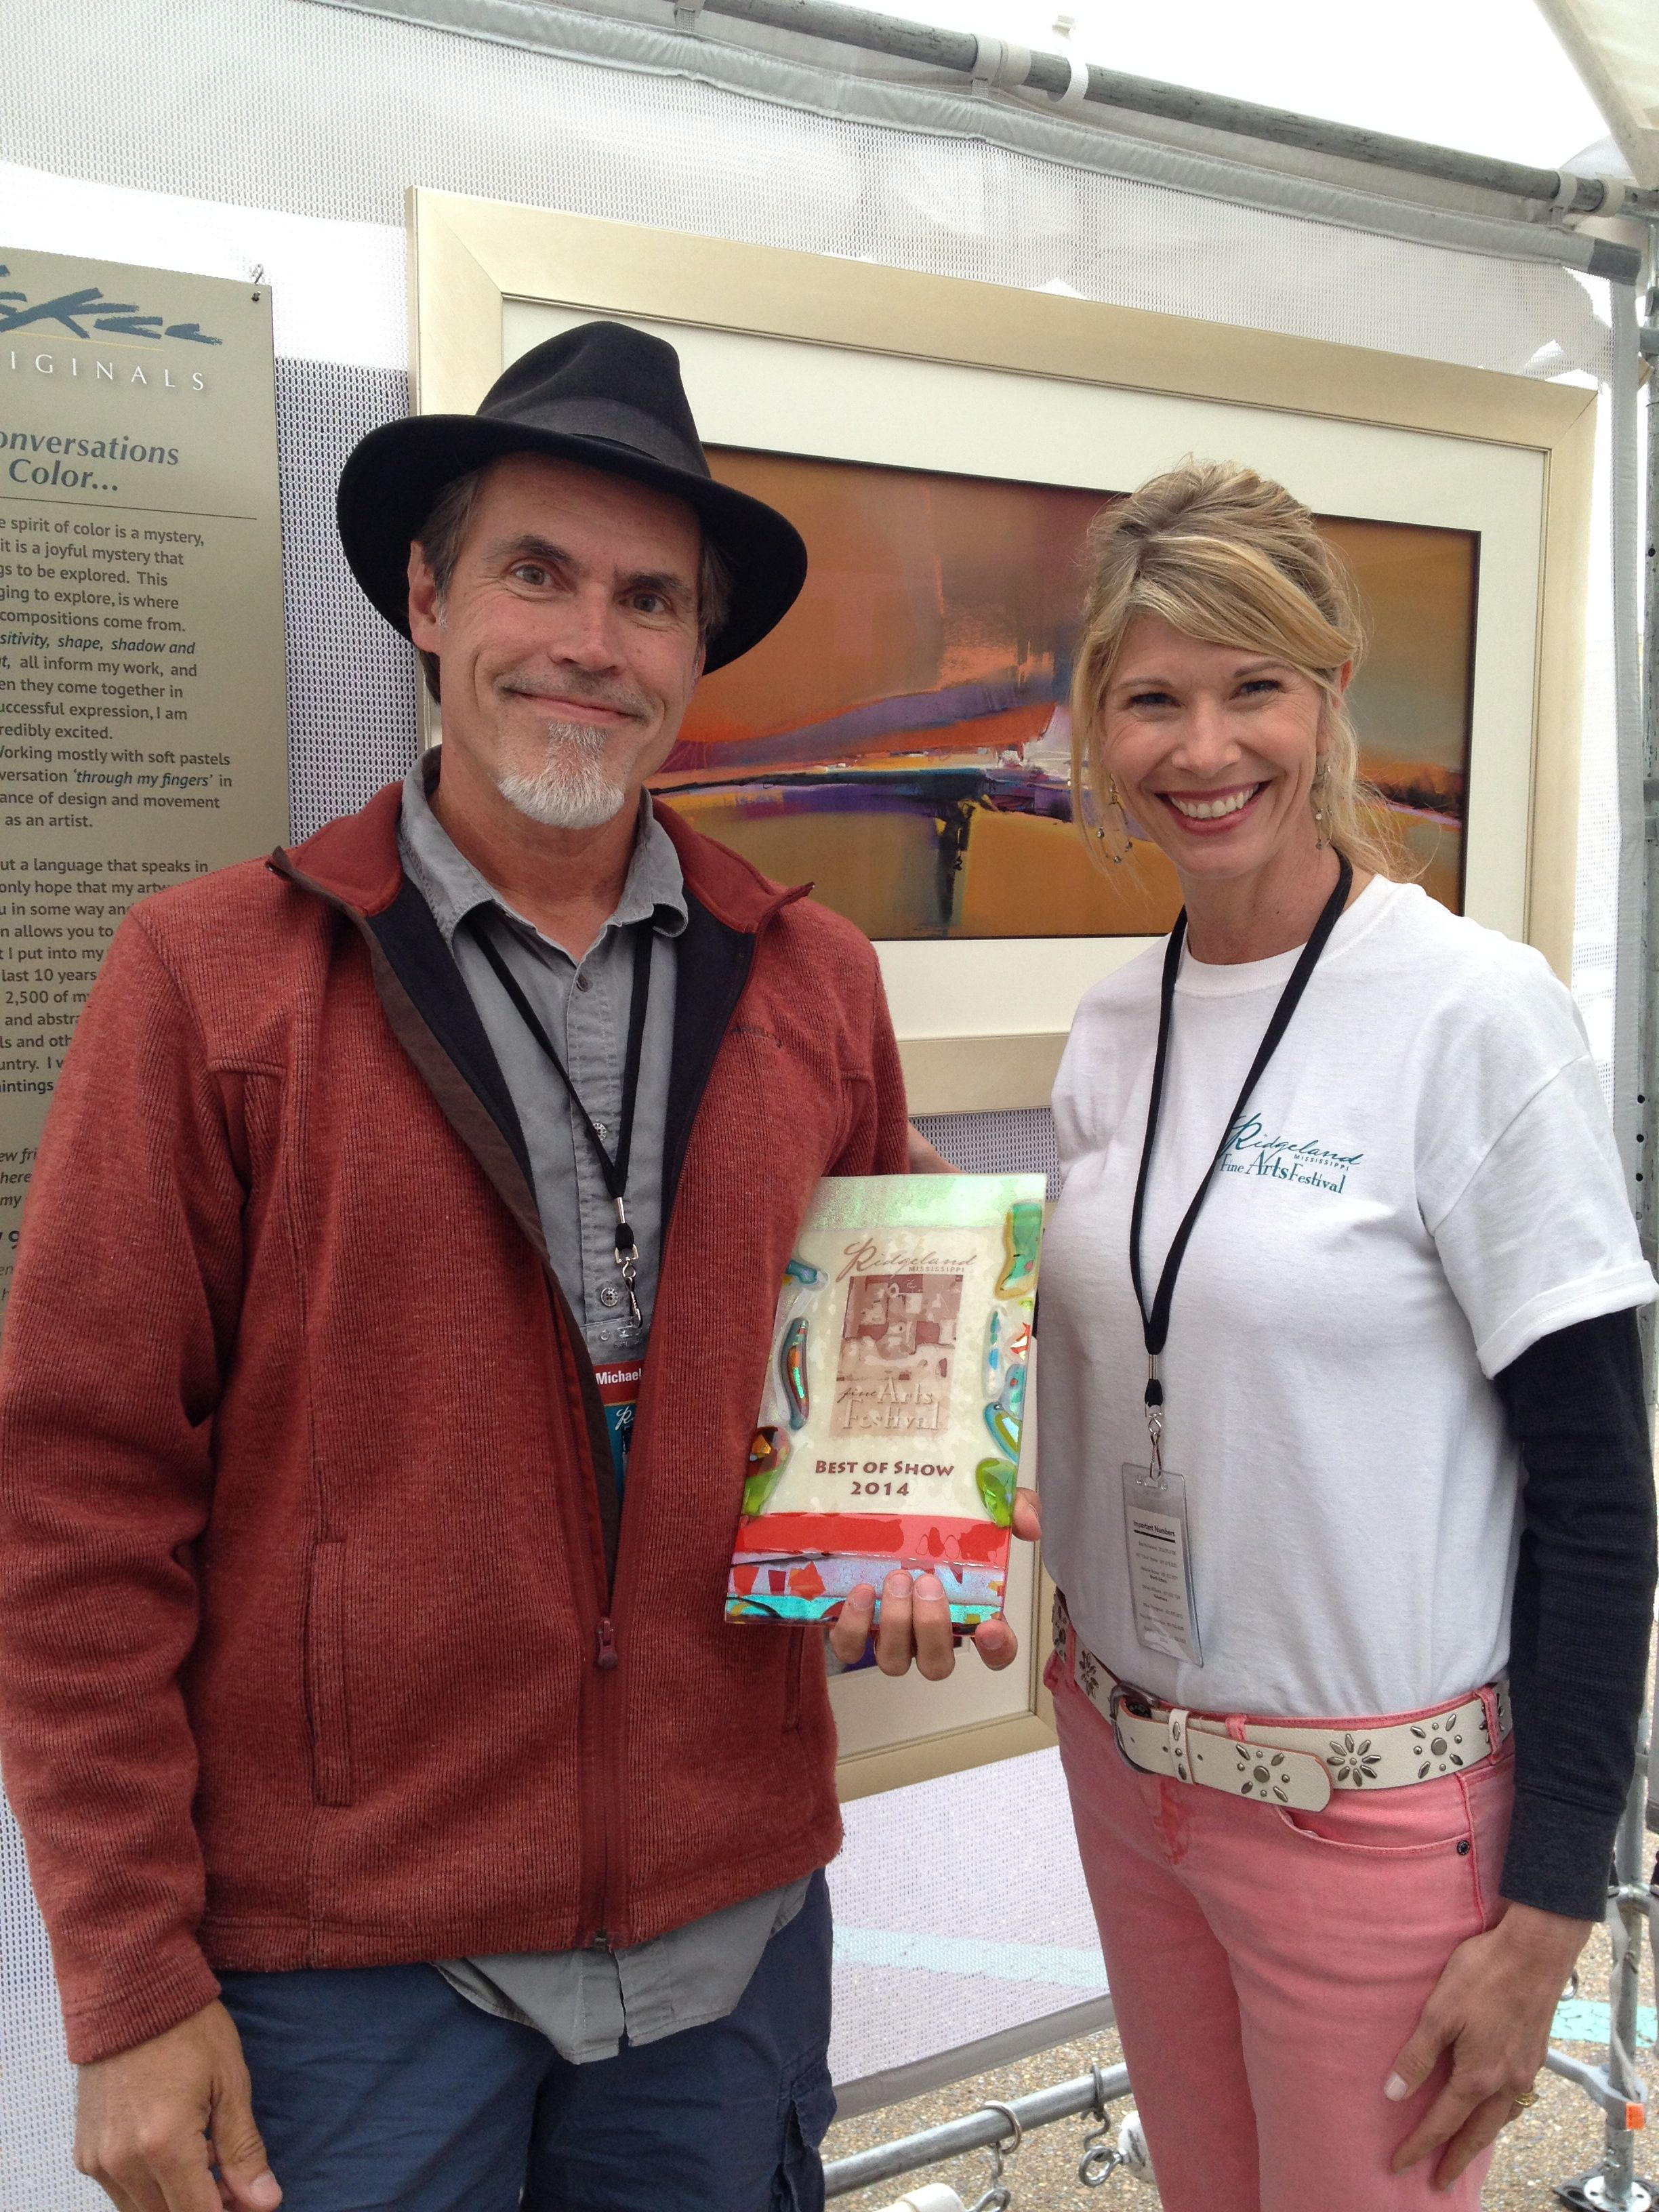 Overall Best Of Show Winner Specializing In Drawings Pastels Michael Mckee Art Festival Festival Cool Artwork